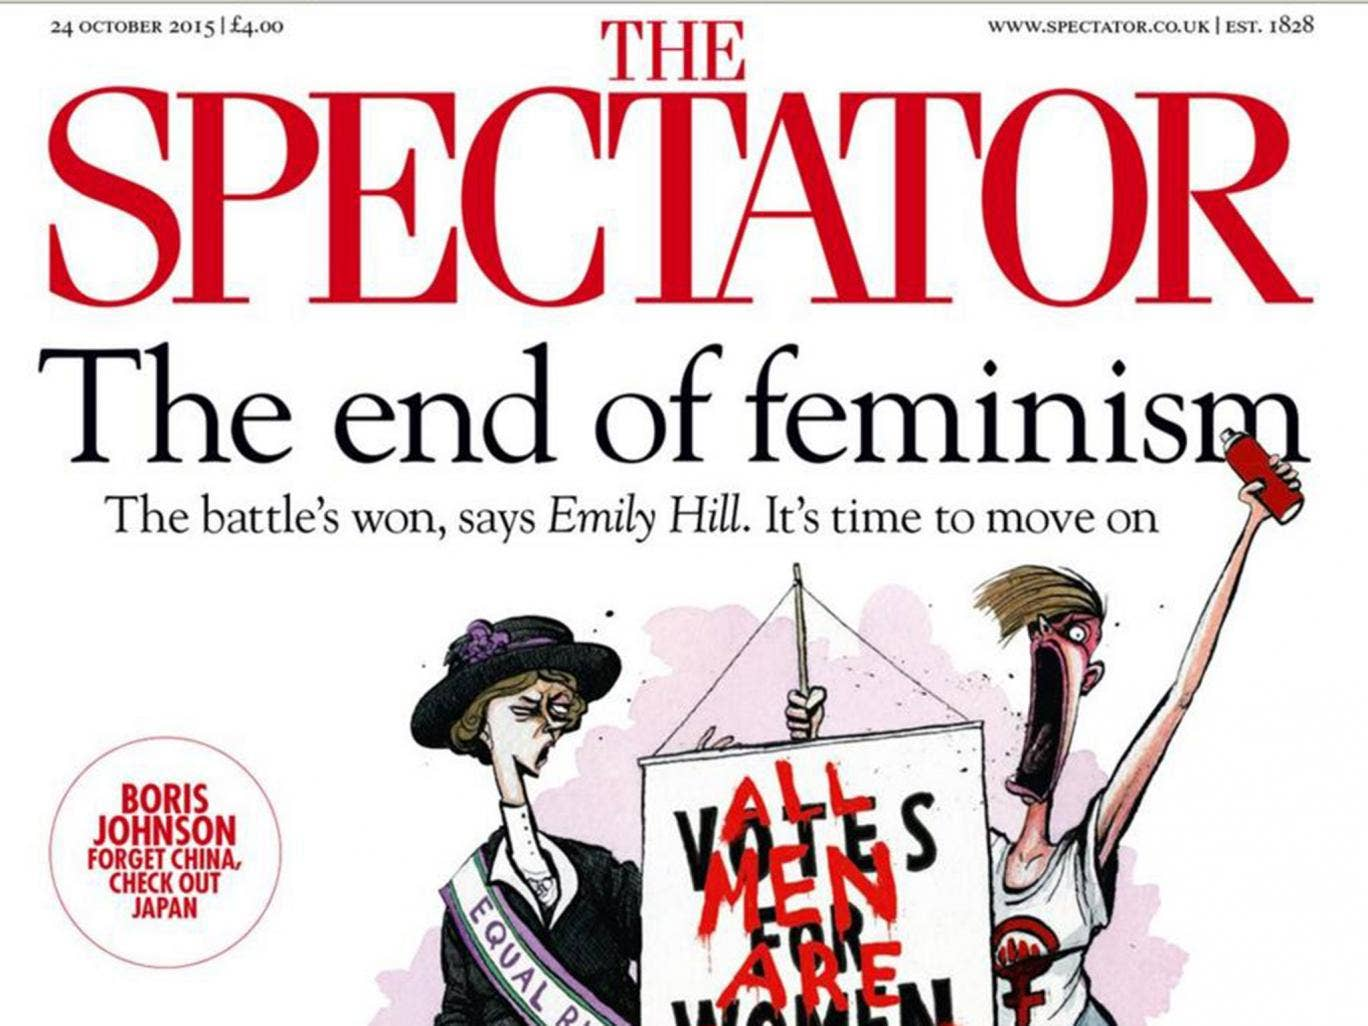 The spectator declares the end of feminism but not everyone agrees